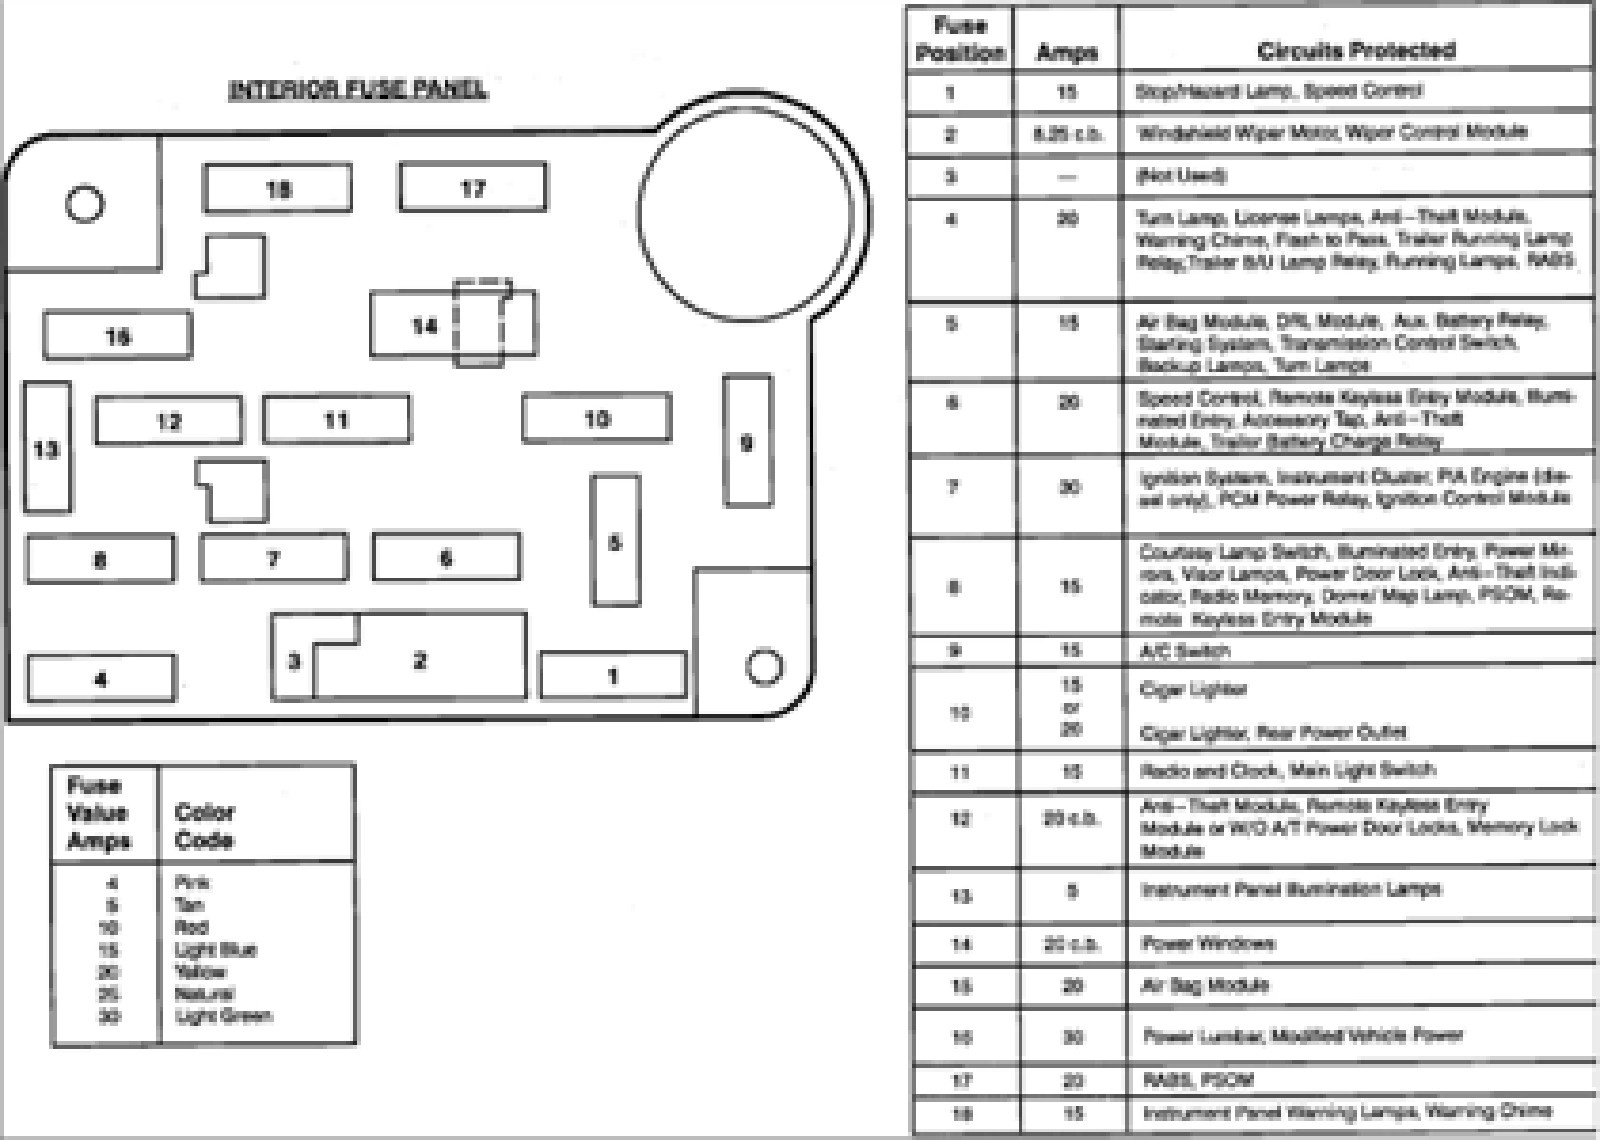 2004 E150 Fuse Diagram Wiring Schematics Ford 2013 E 150 Box Location Books Of U2022 Econoline